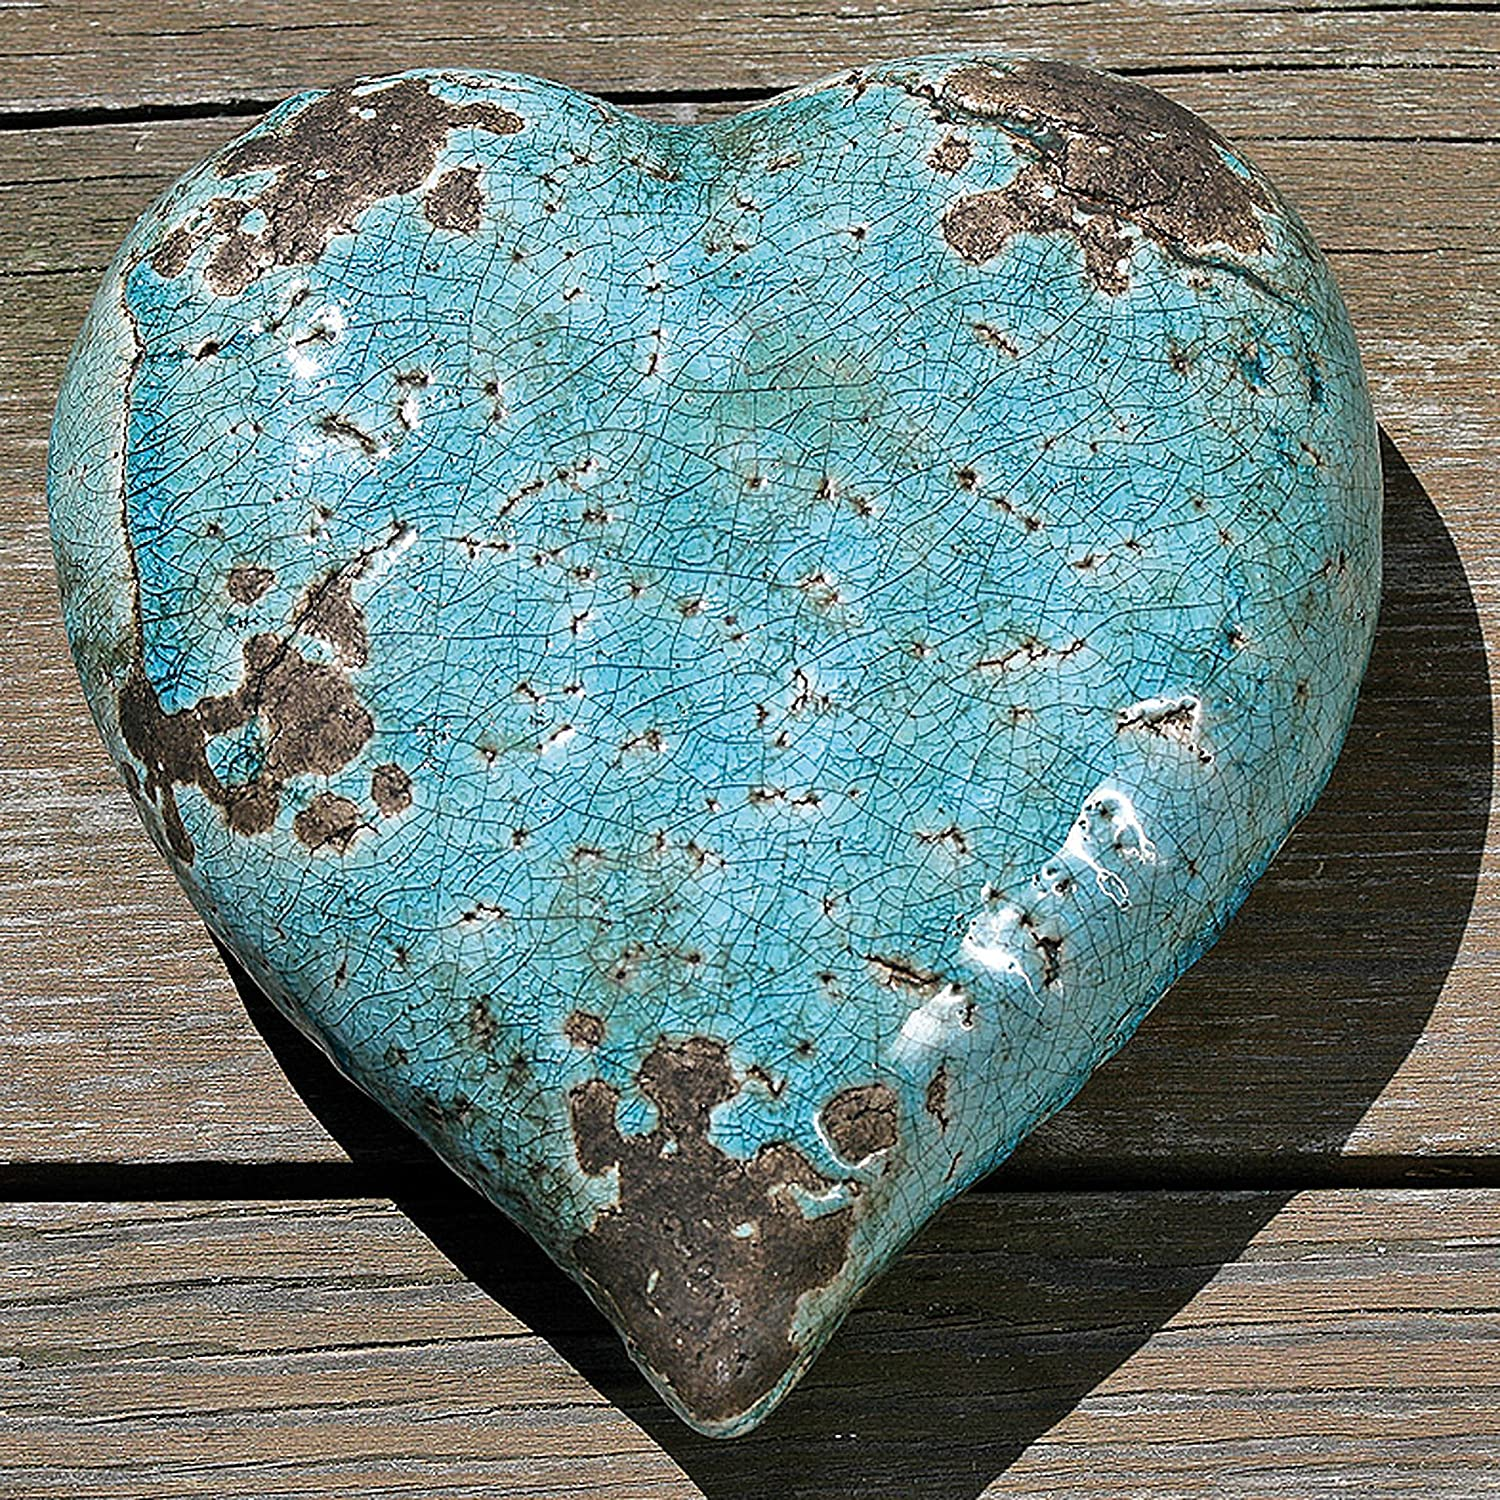 Distressed Blue Turquoise 14 and 10 Inch Diameter COMINHKPR146514 Artisinal Design Crackled Glaze Over Terracotta WHW Whole House Worlds Beach Chic Decorative Plates